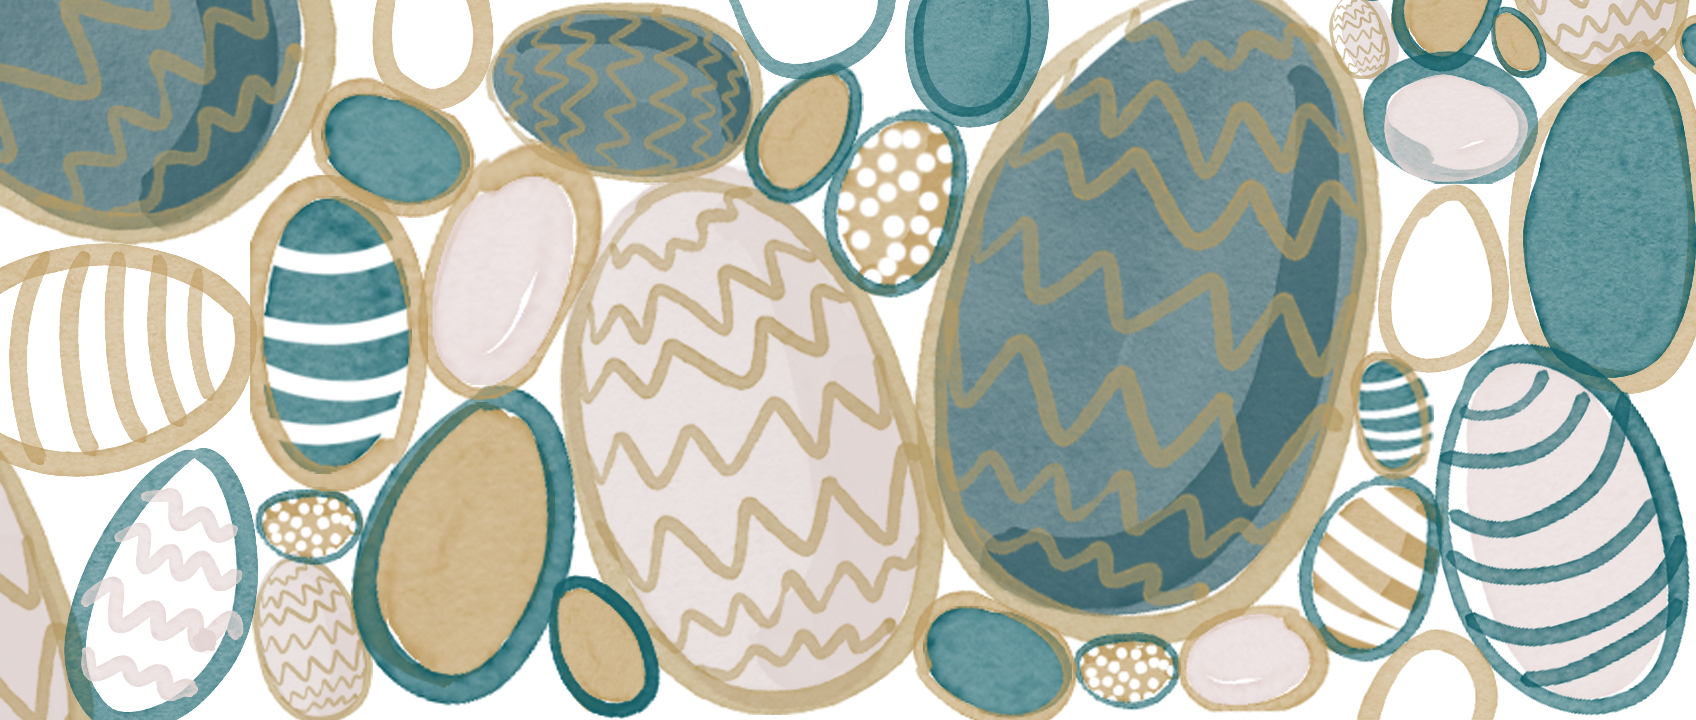 An Easter to indulge!